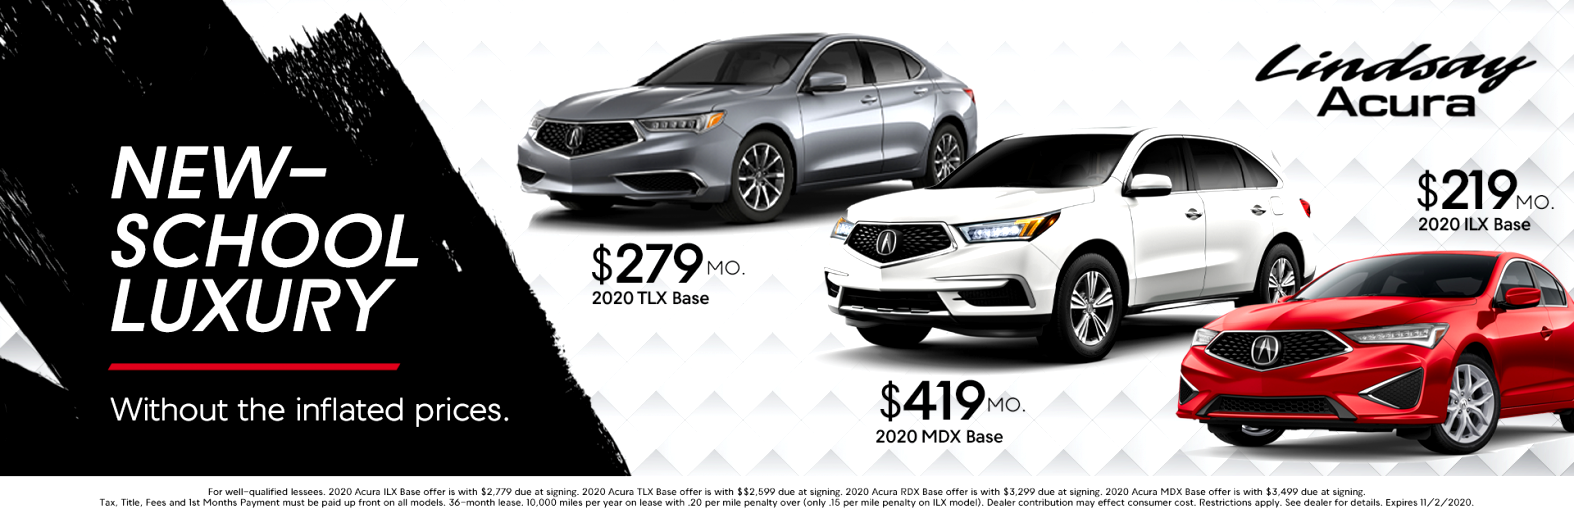 acura black friday deals 2020 Prices